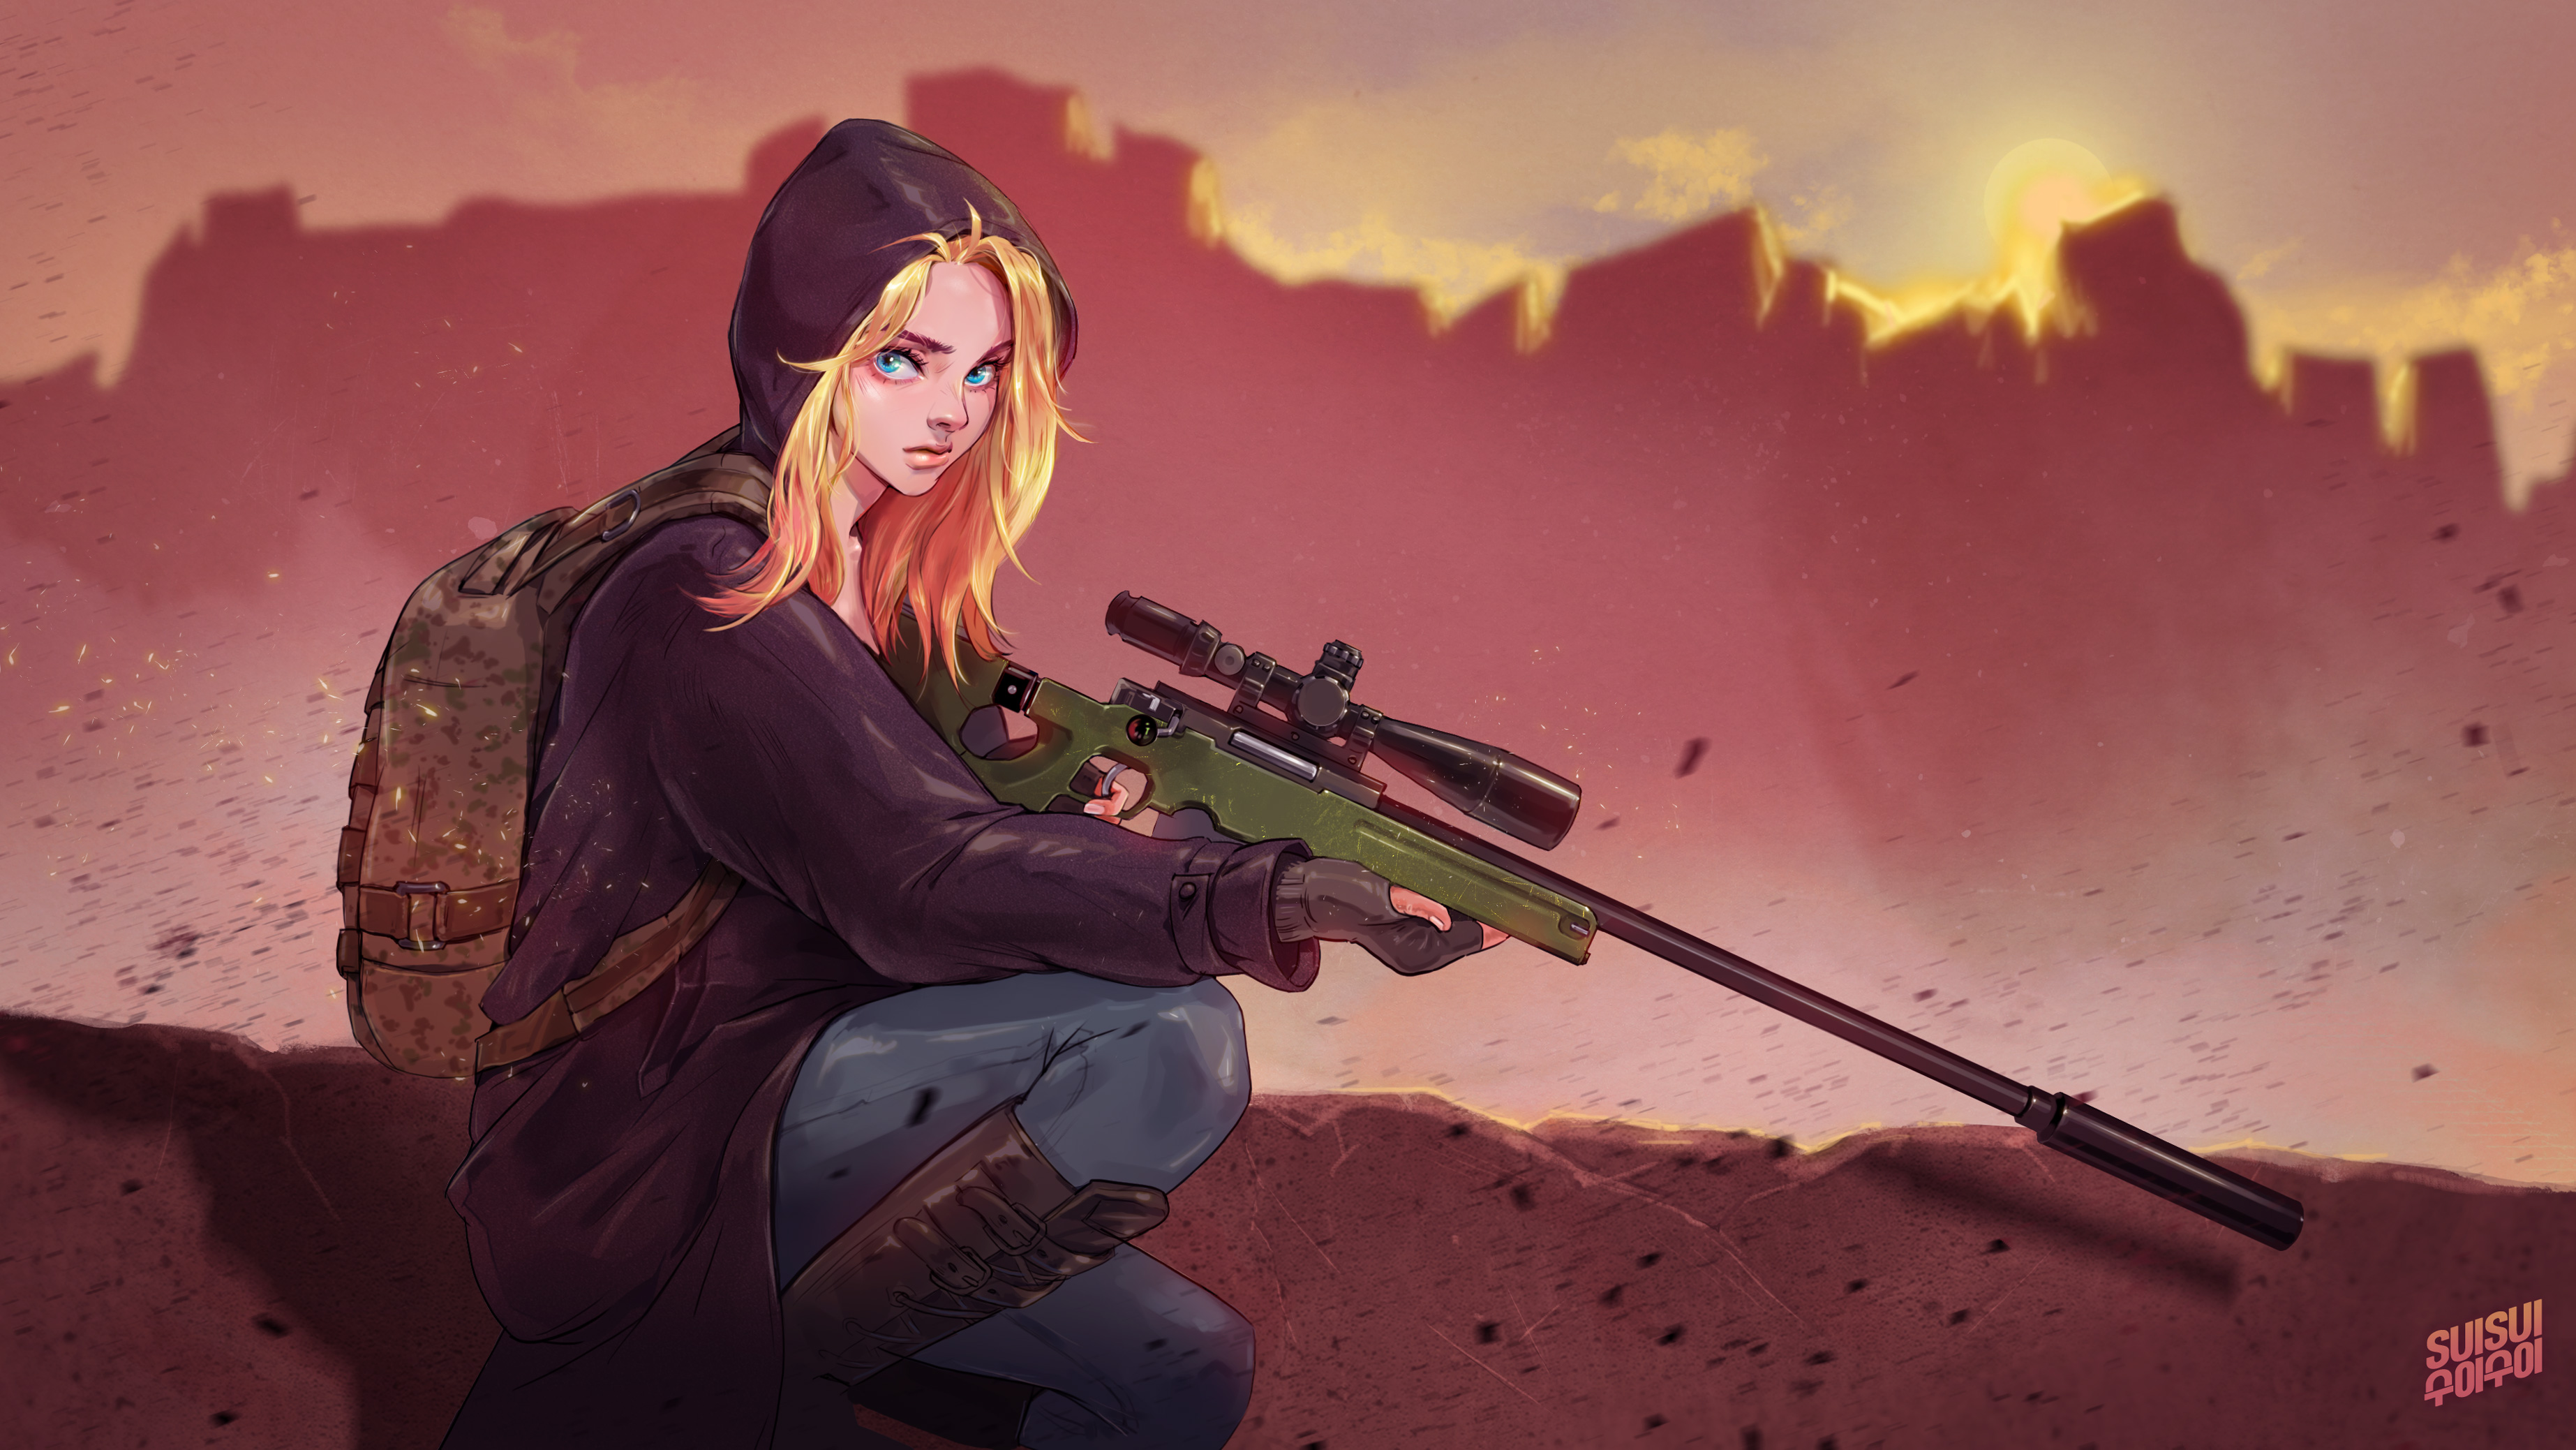 2560x1440 Pubg Illustration 4k 1440p Resolution Hd 4k: 1366x768 Pubg Game Girl Fanart 1366x768 Resolution HD 4k